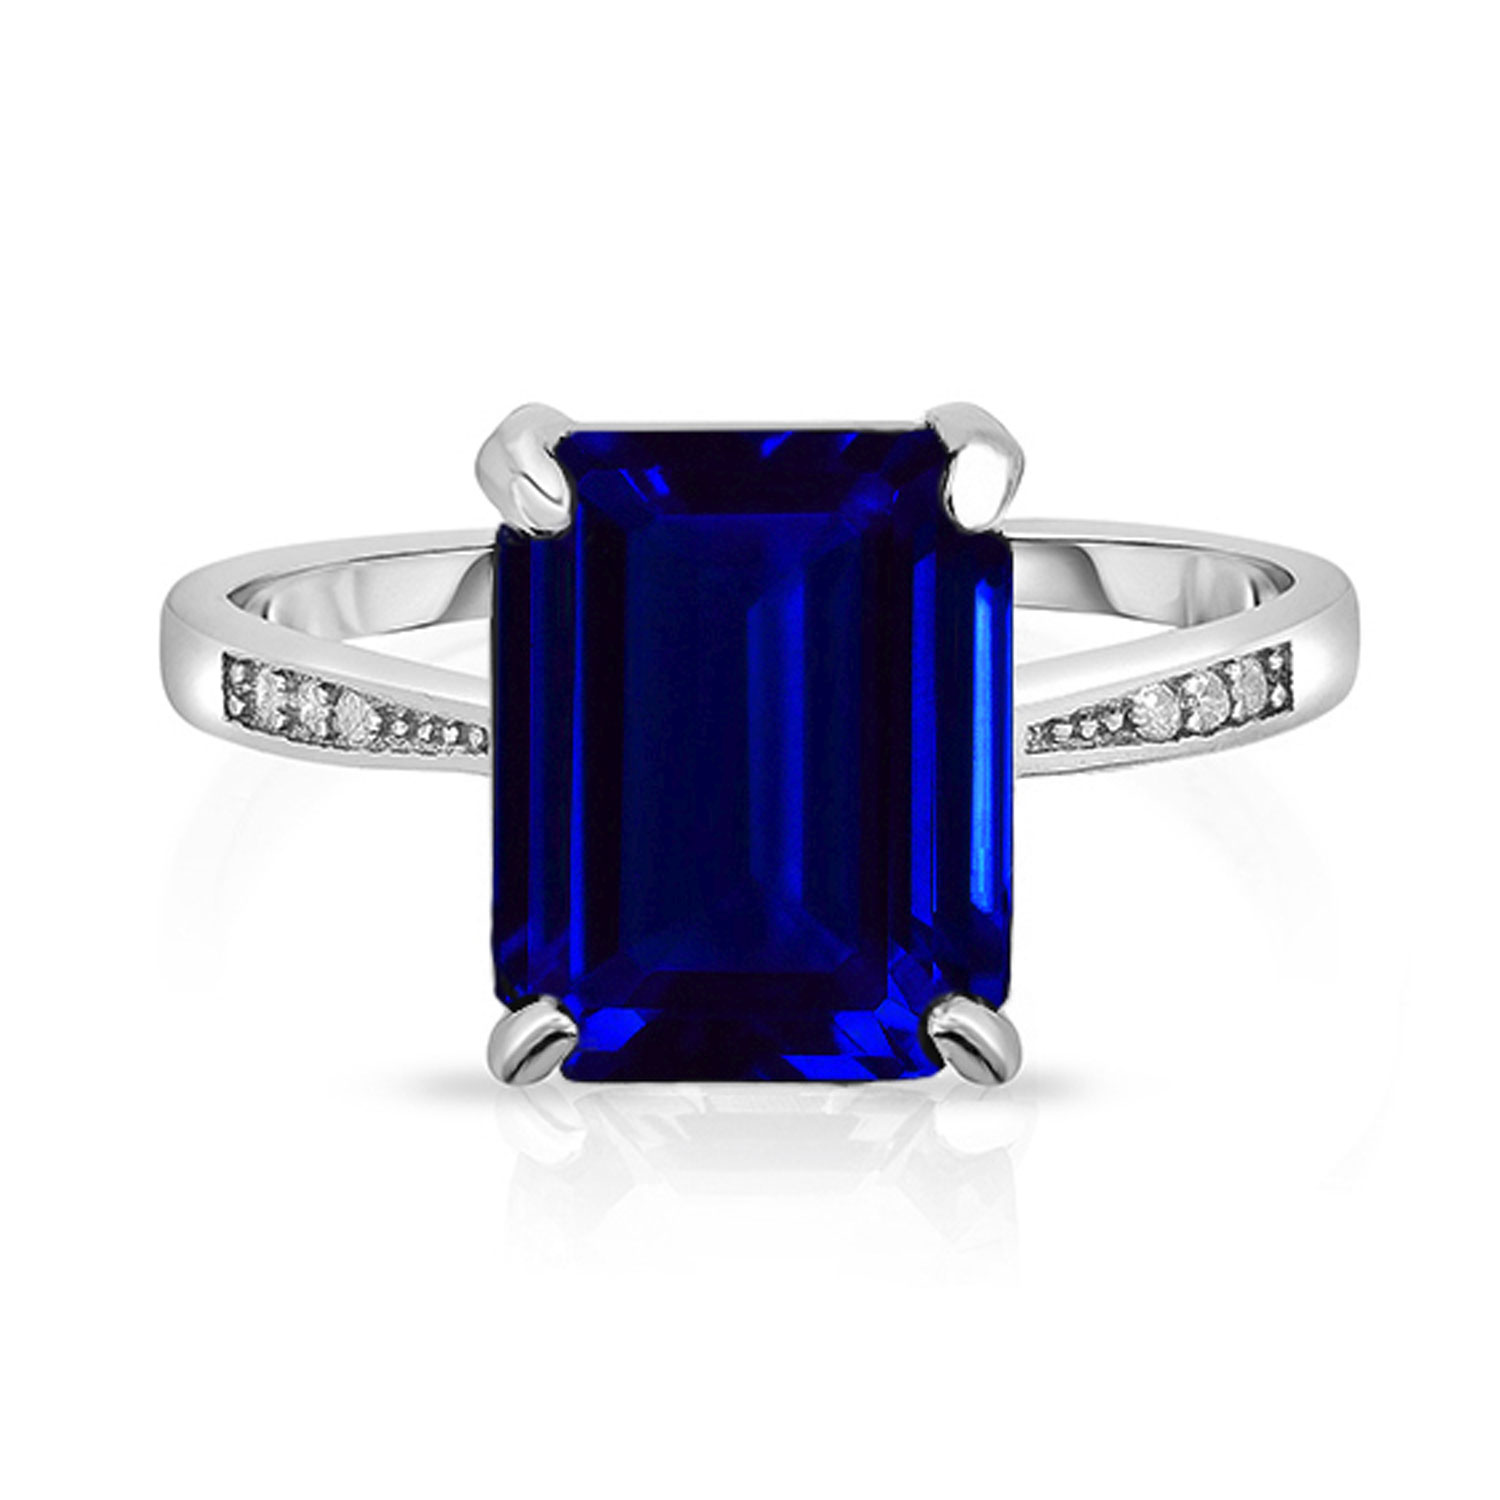 4.00 CTTW Sapphire Sterling Silver Ring